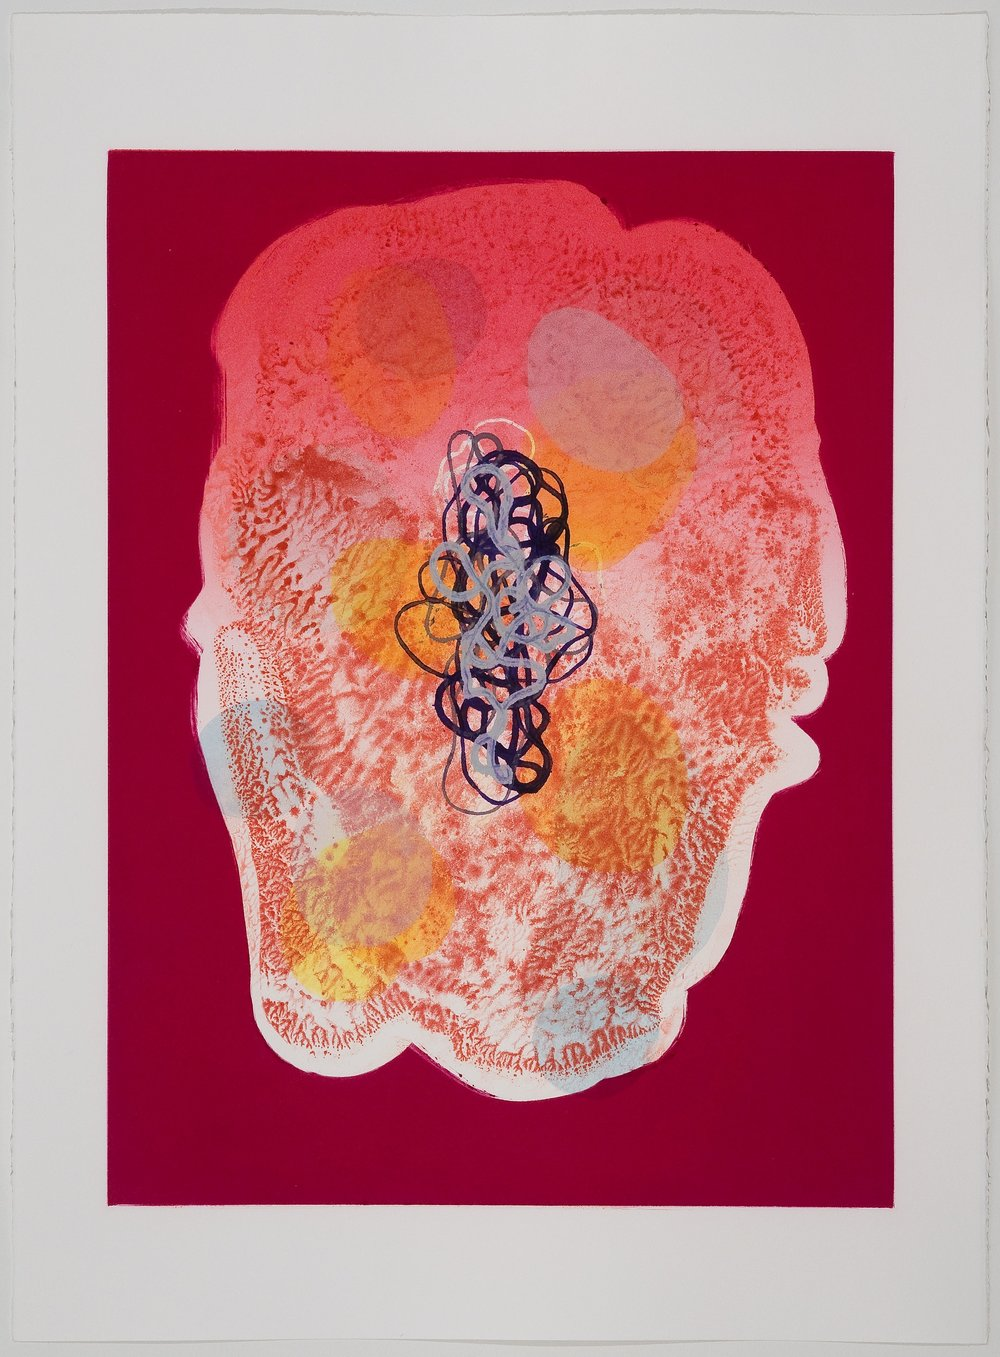 Untitled (IV) , 2010 Monotype Image Size: 18 x 26 inches Paper Size: 22 x 30 inches Series of 6